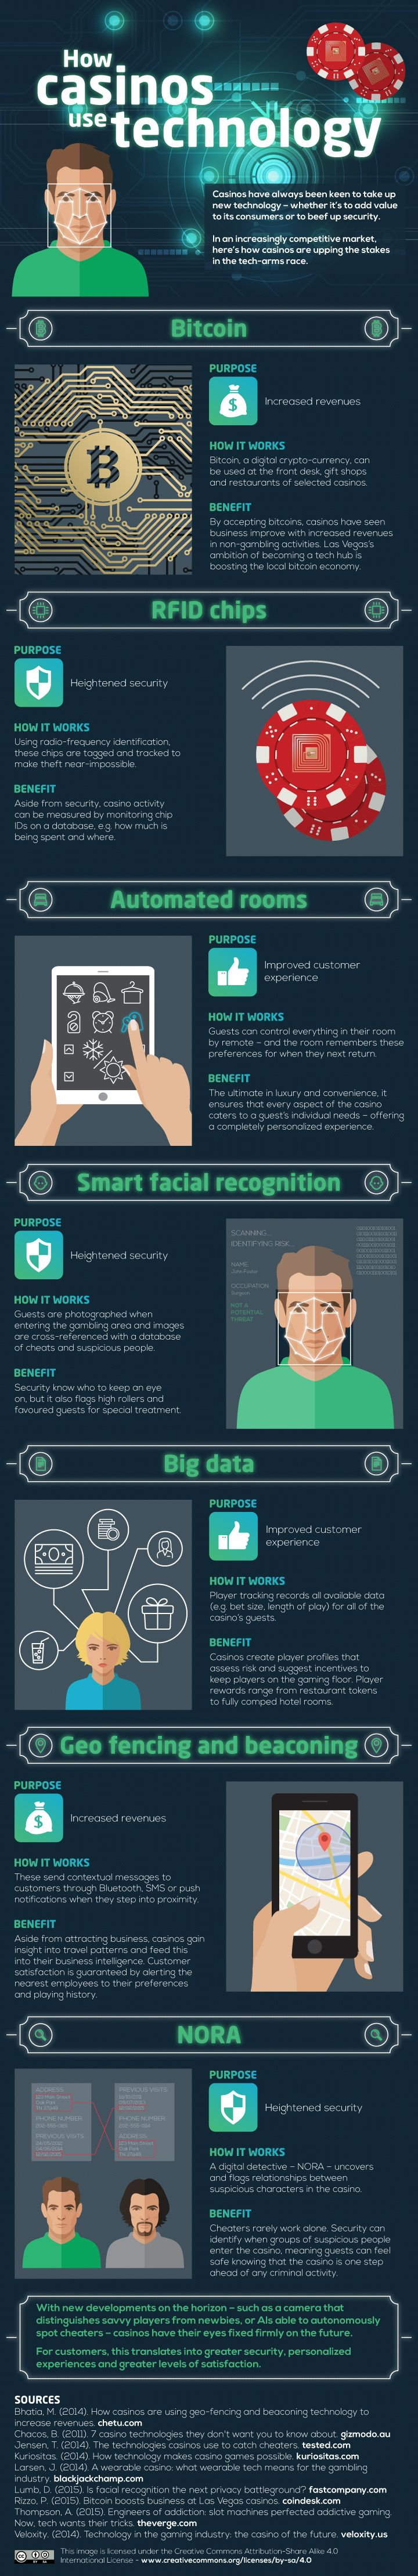 How Casinos Use Technology #infographic